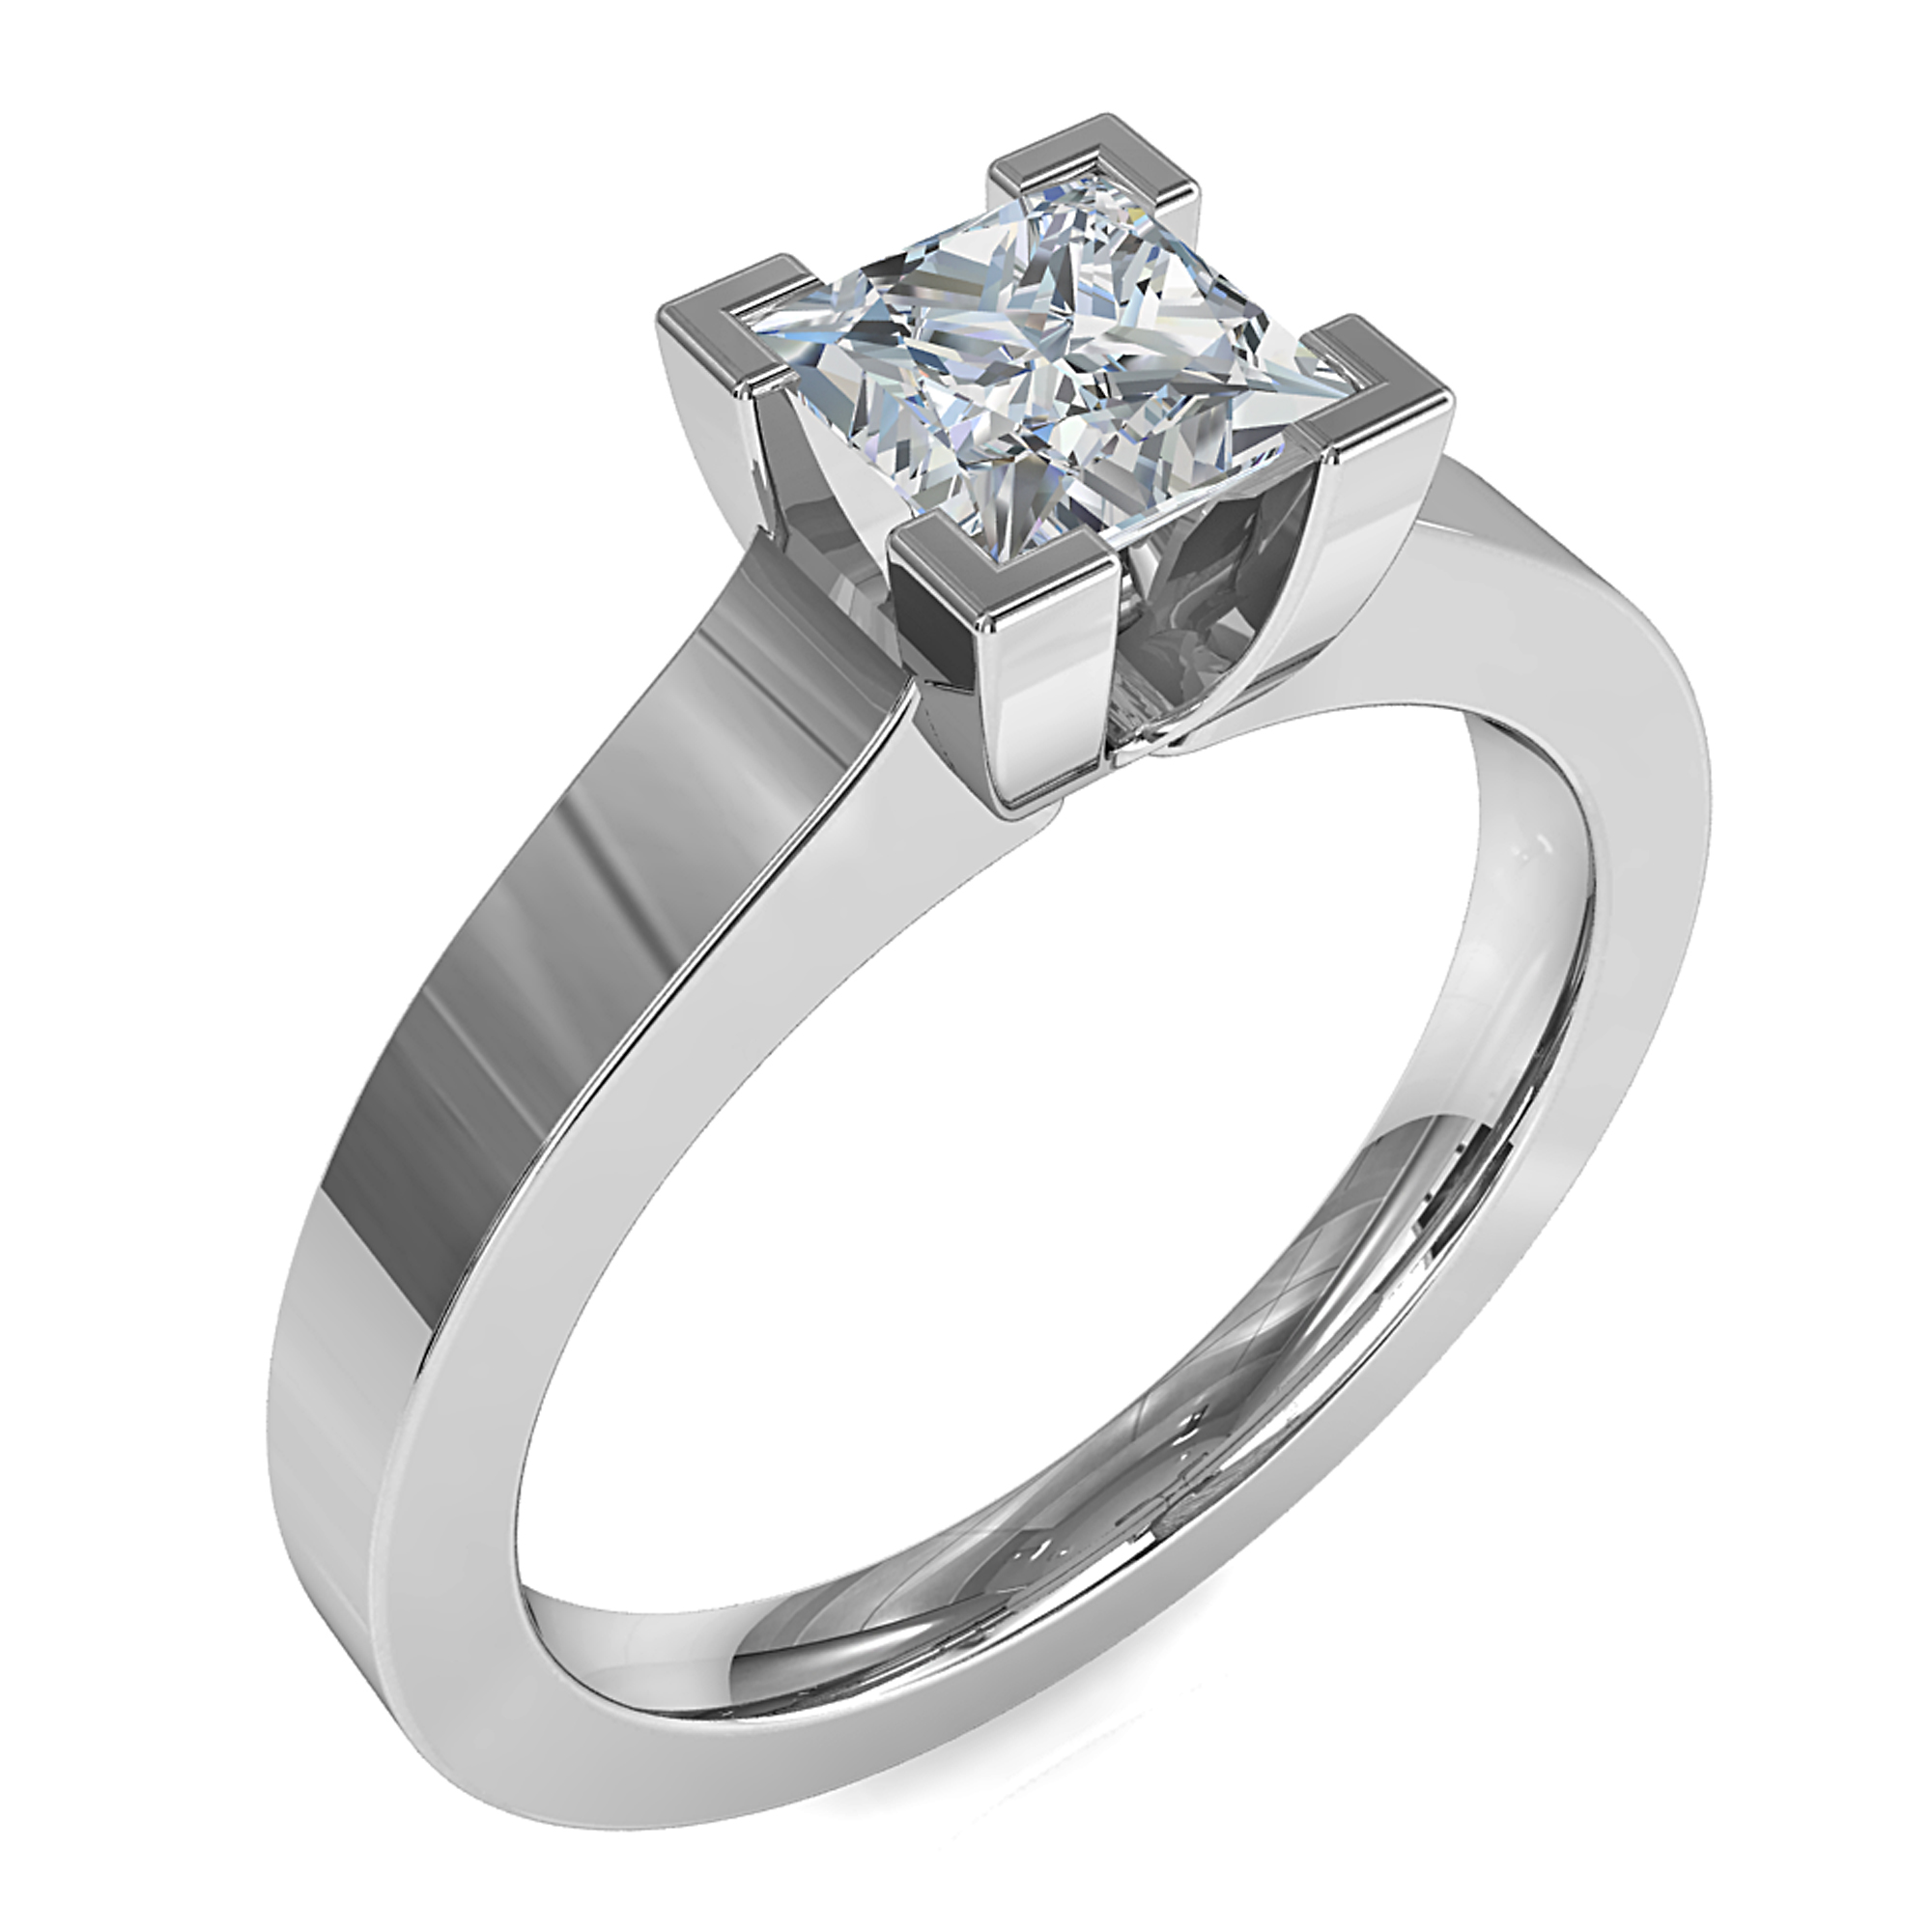 Princess Cut Solitaire Diamond Engagement Ring, 4 Corner Claws on a Thick Flat Band.